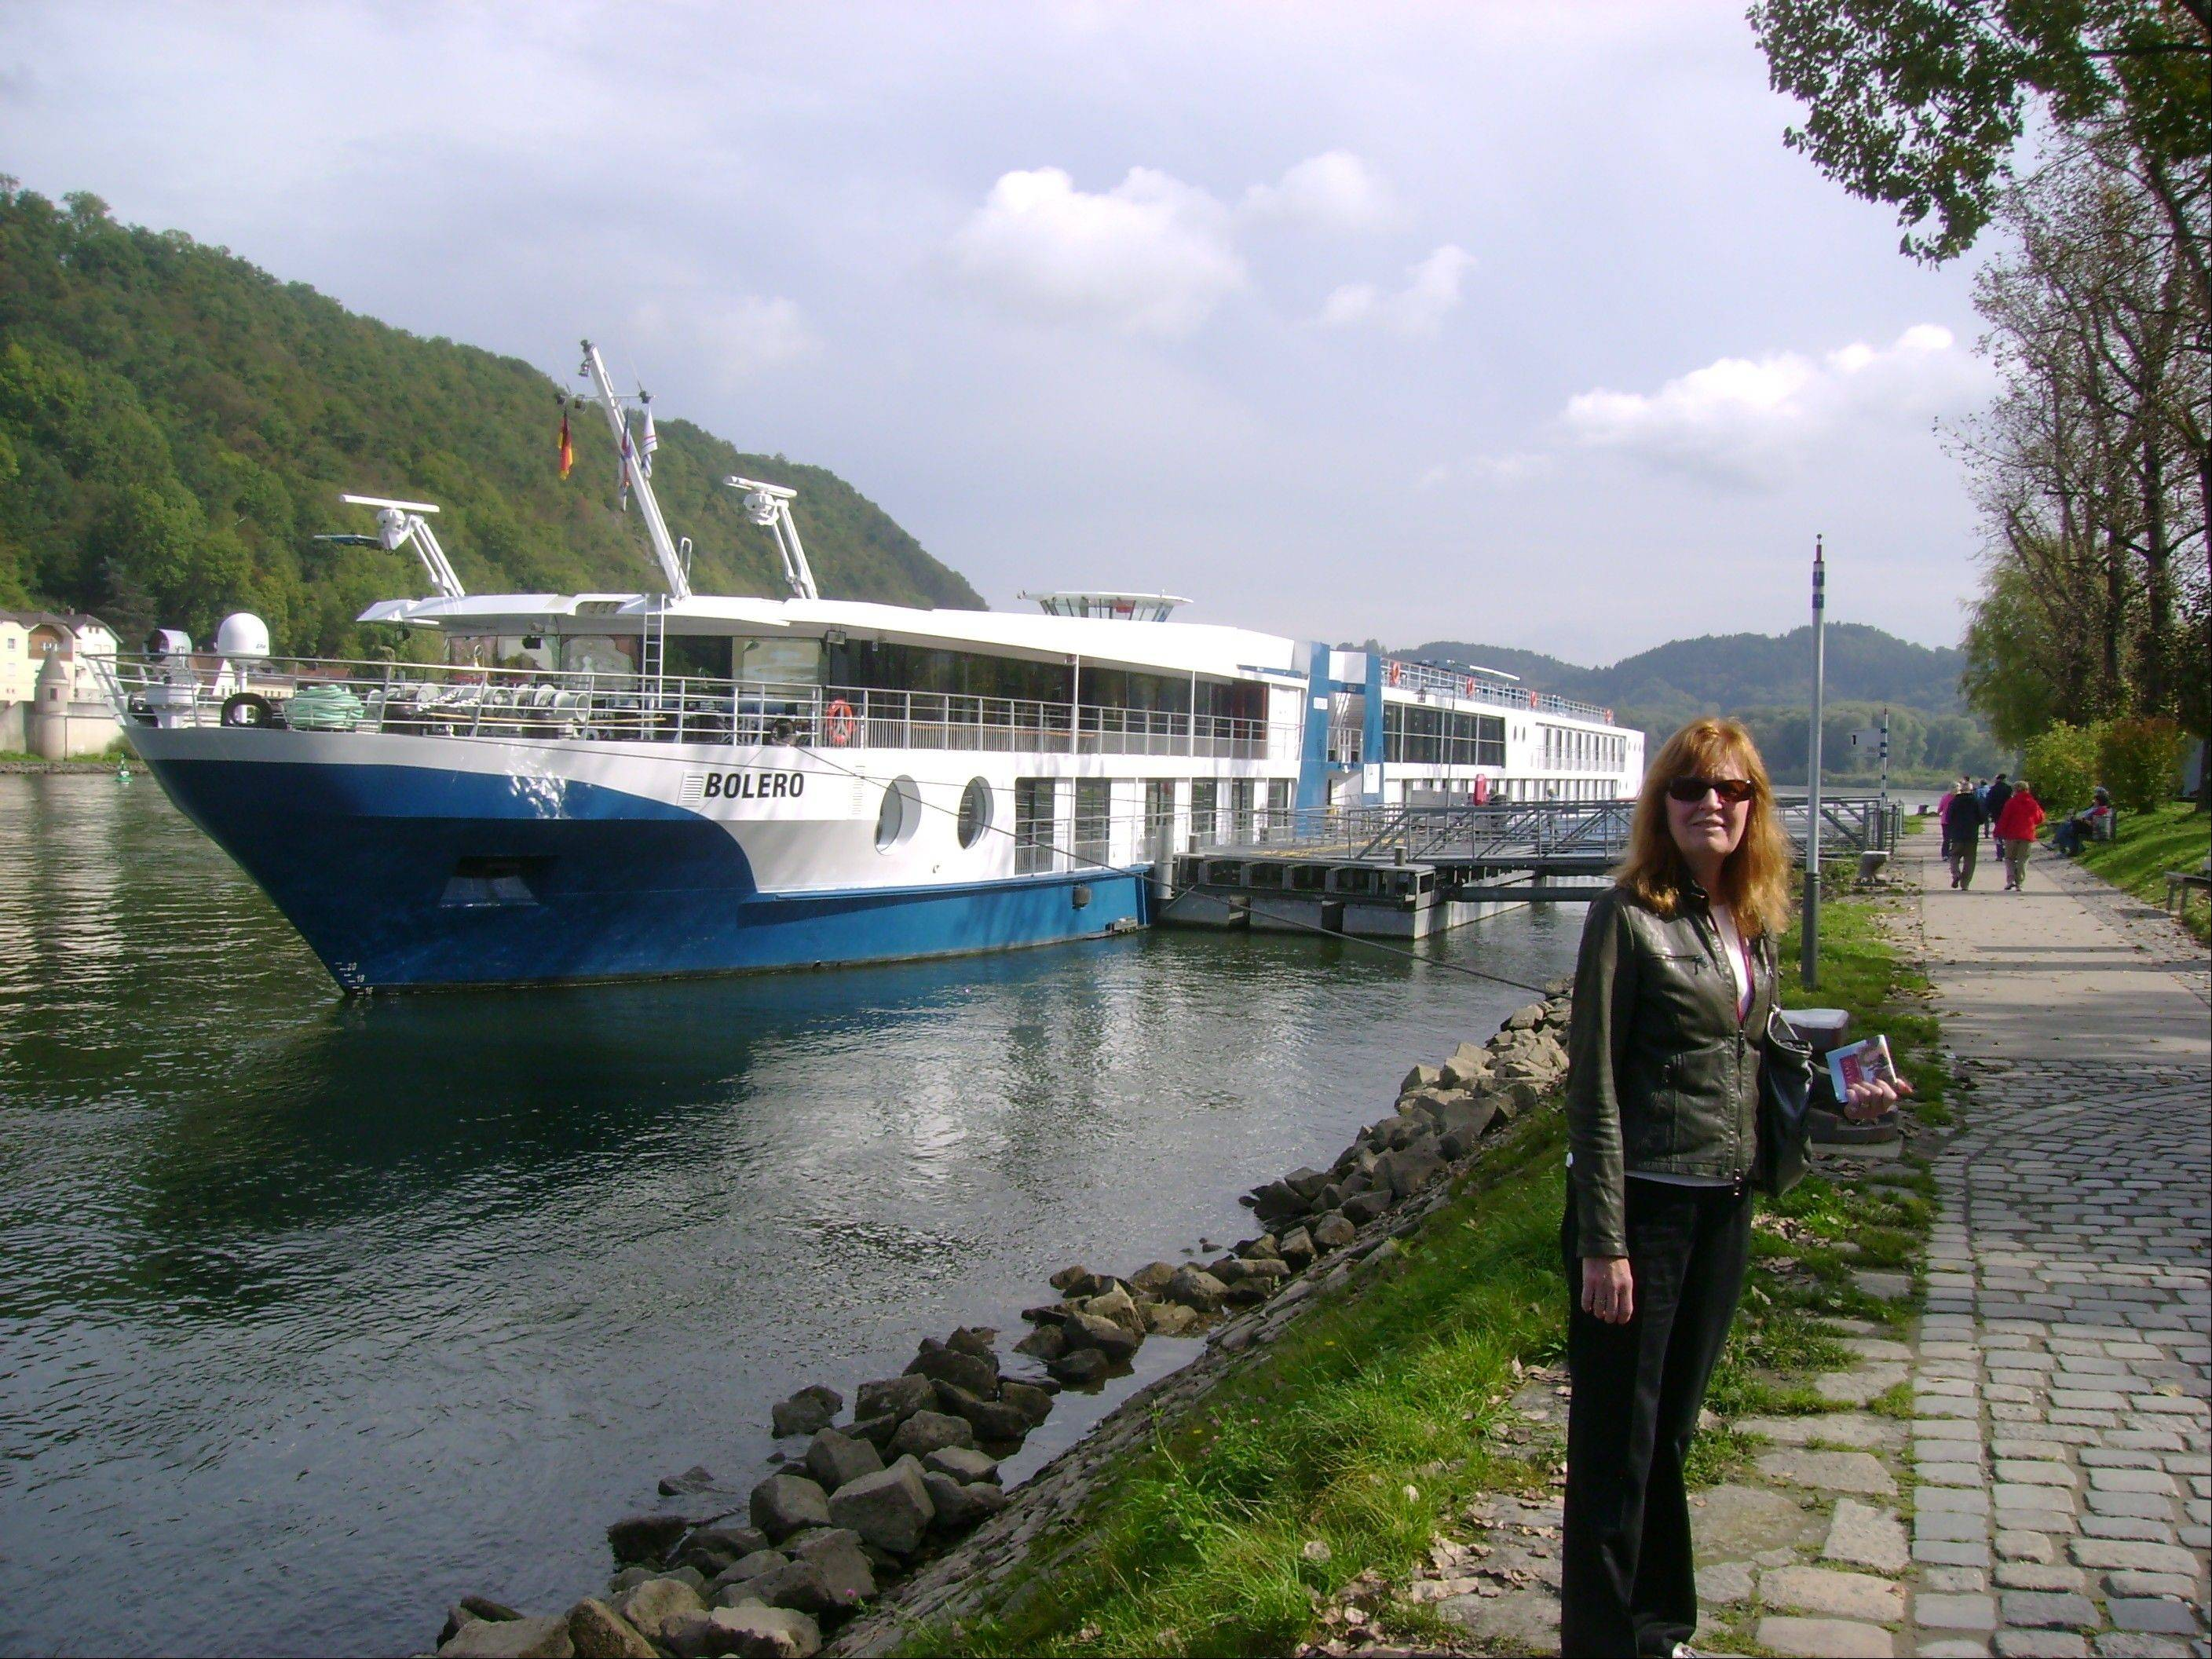 Betty Adams in Passau, Germany, with the MS Bolero, a Viking River Cruises ship. Adams took a cruise on the Danube River with her husband Glenn Adams. The Adamses were glad to have travel insurance to cover costs when their travel plans got scrambled.